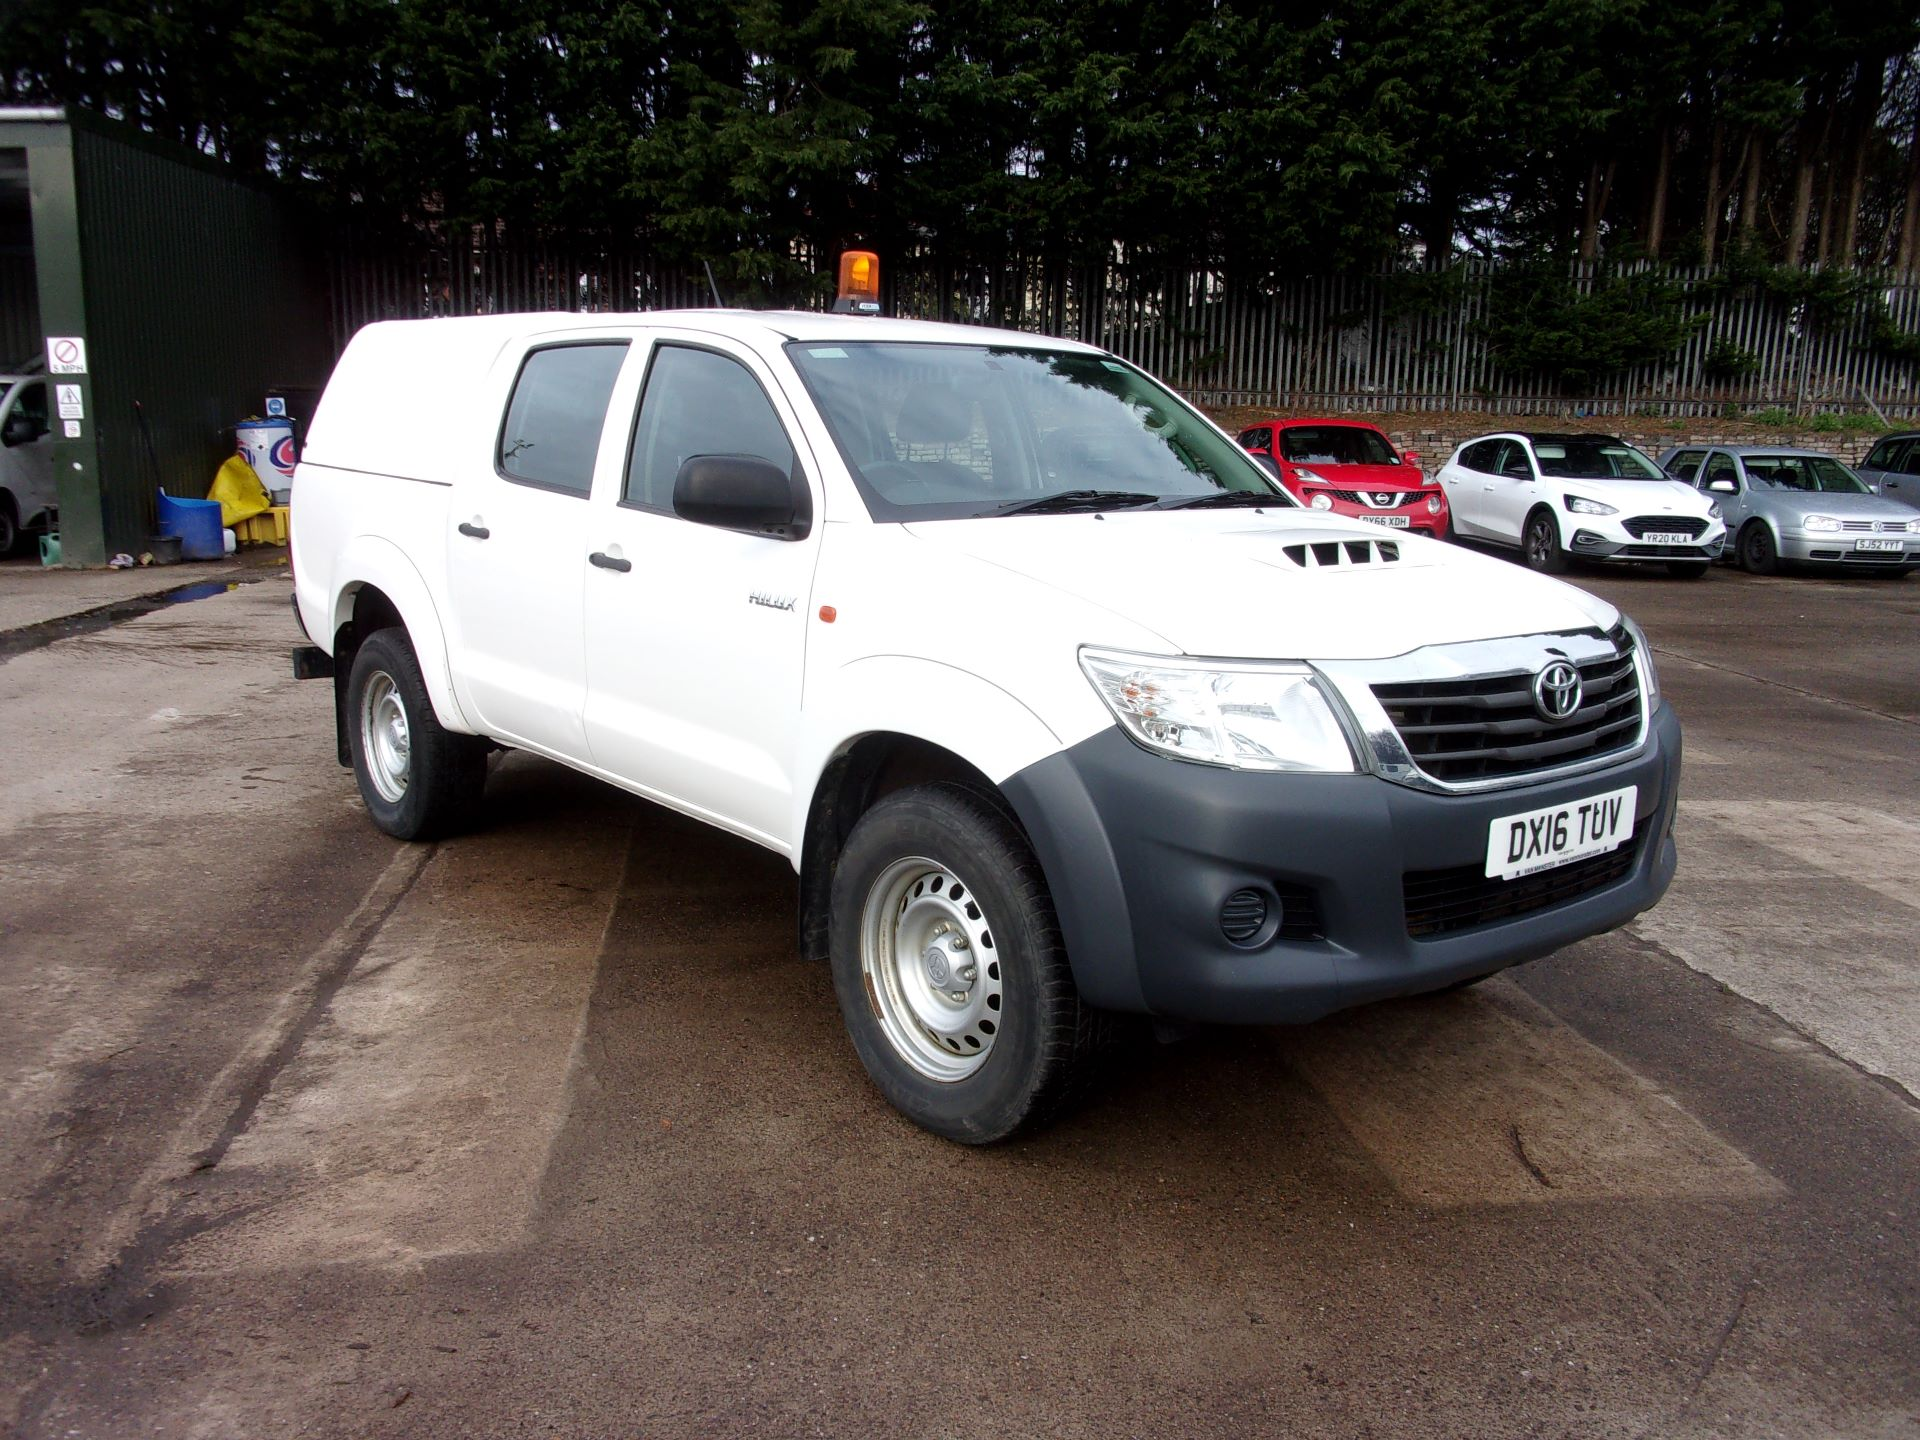 2016 Toyota Hilux ACTIVE DOUBLE CAB PICK UP 2.5 D-4D 4WD 144PS (DX16TUV)